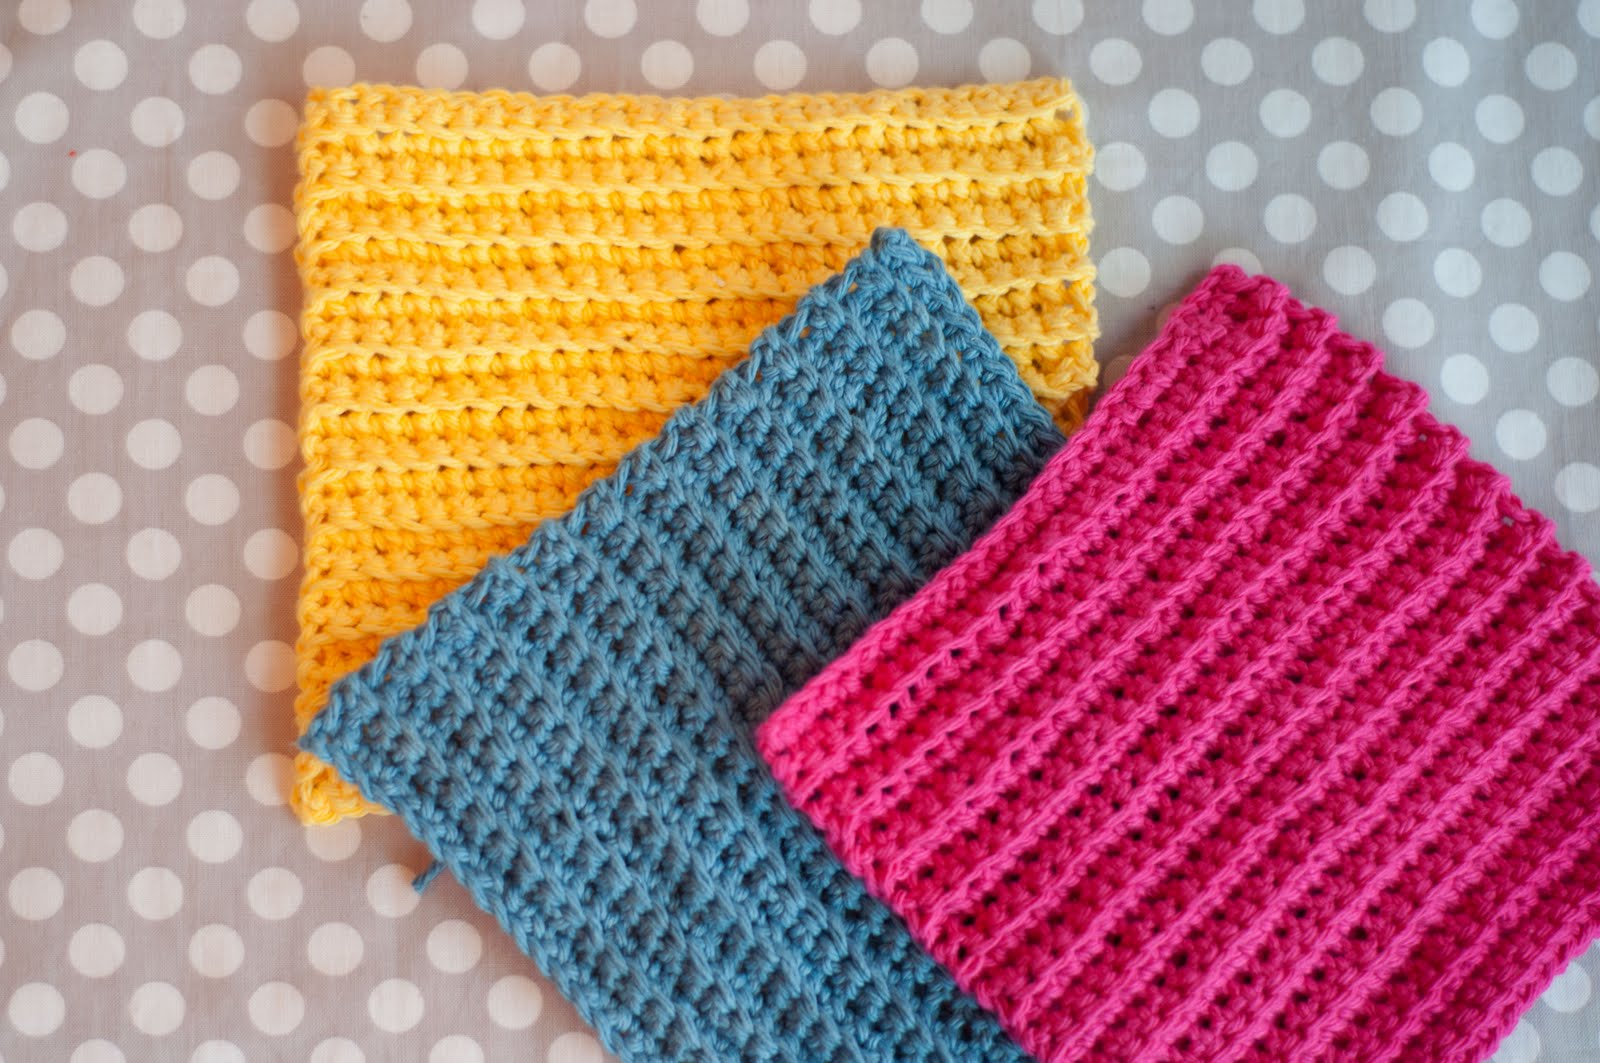 Crochet Patterns And Tutorials : Basic Crochet Stitches: Beginner Ruffled Scarf Pattern Tip Junkie